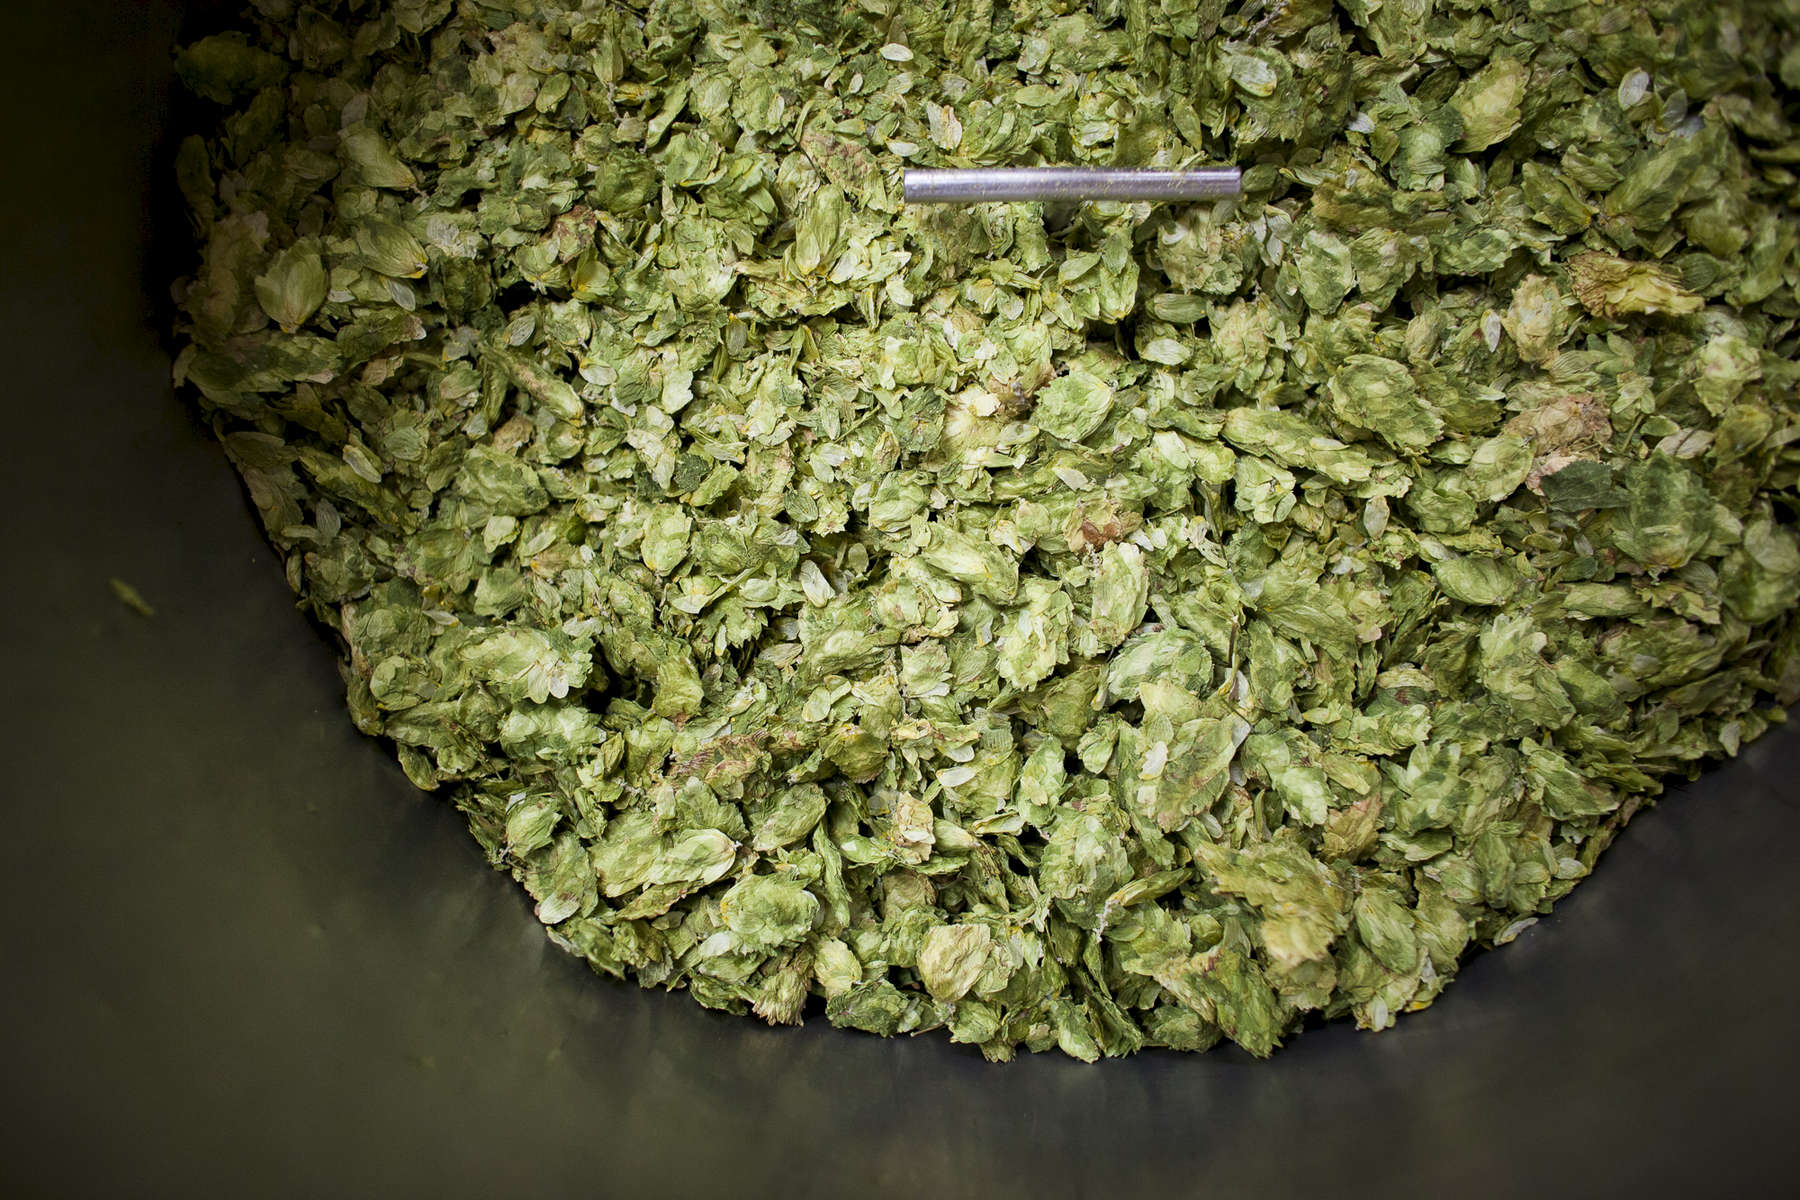 Detail of dried hops at Sean Lawson's home-based microbrewery, Lawson's Finest Liquids, in Warren, Vemont. photo by Monica Donovan for the Boston Globe